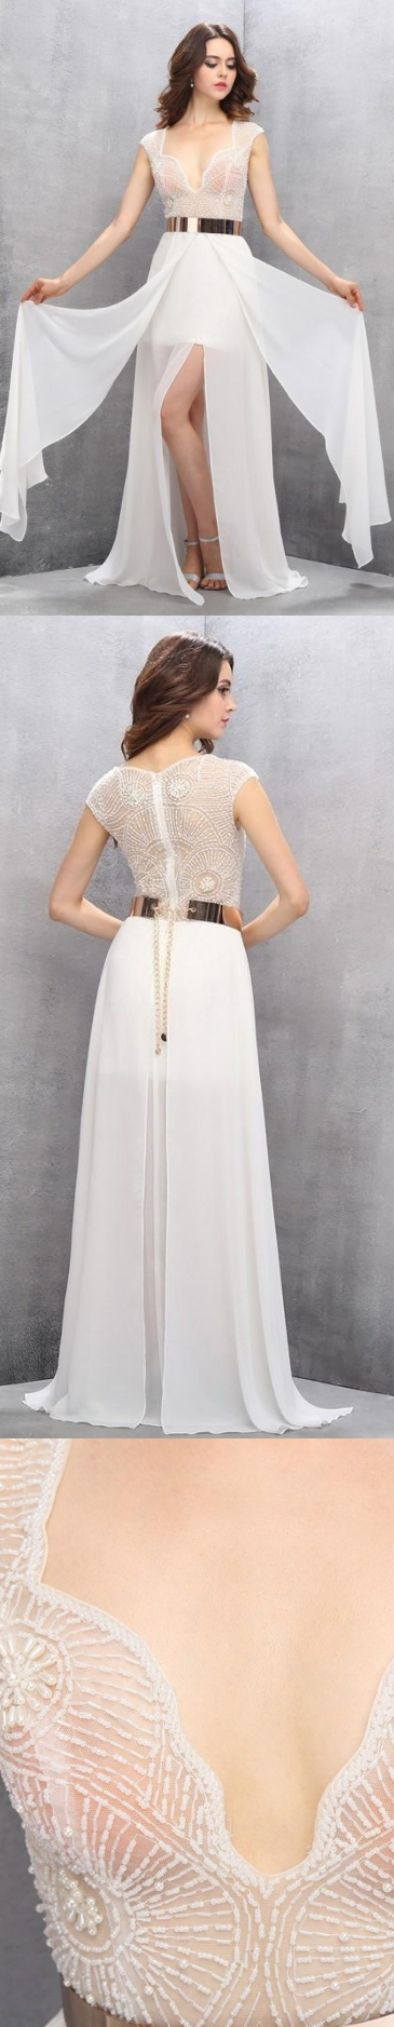 Princess prom dresses white prom dresses long prom dresses with